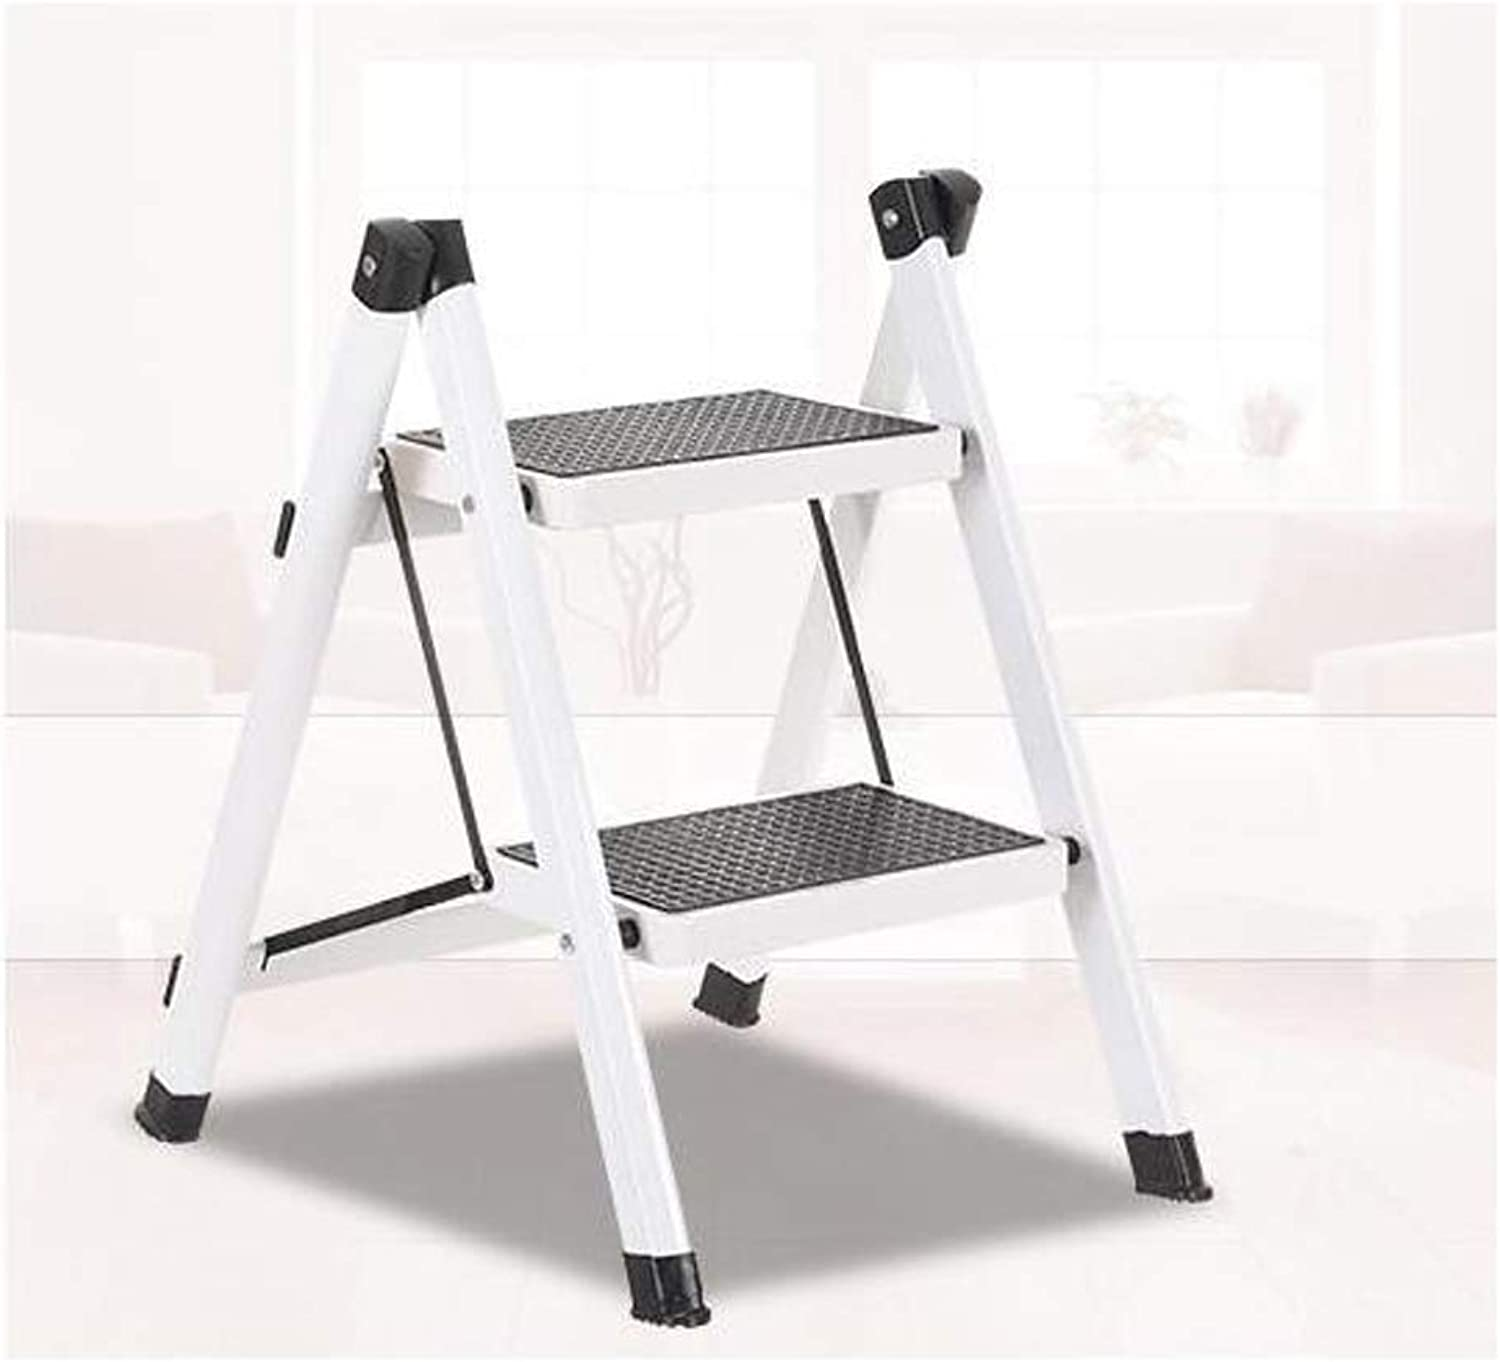 WaWei Ladder Stool Kitchen Ladder Home Folding Ladder Stool Dormitory Upper Stairs Multi-Function Small Hanging Ladder Two Steps Horse Stool Two-Step Ladder Step Stool (color   White)